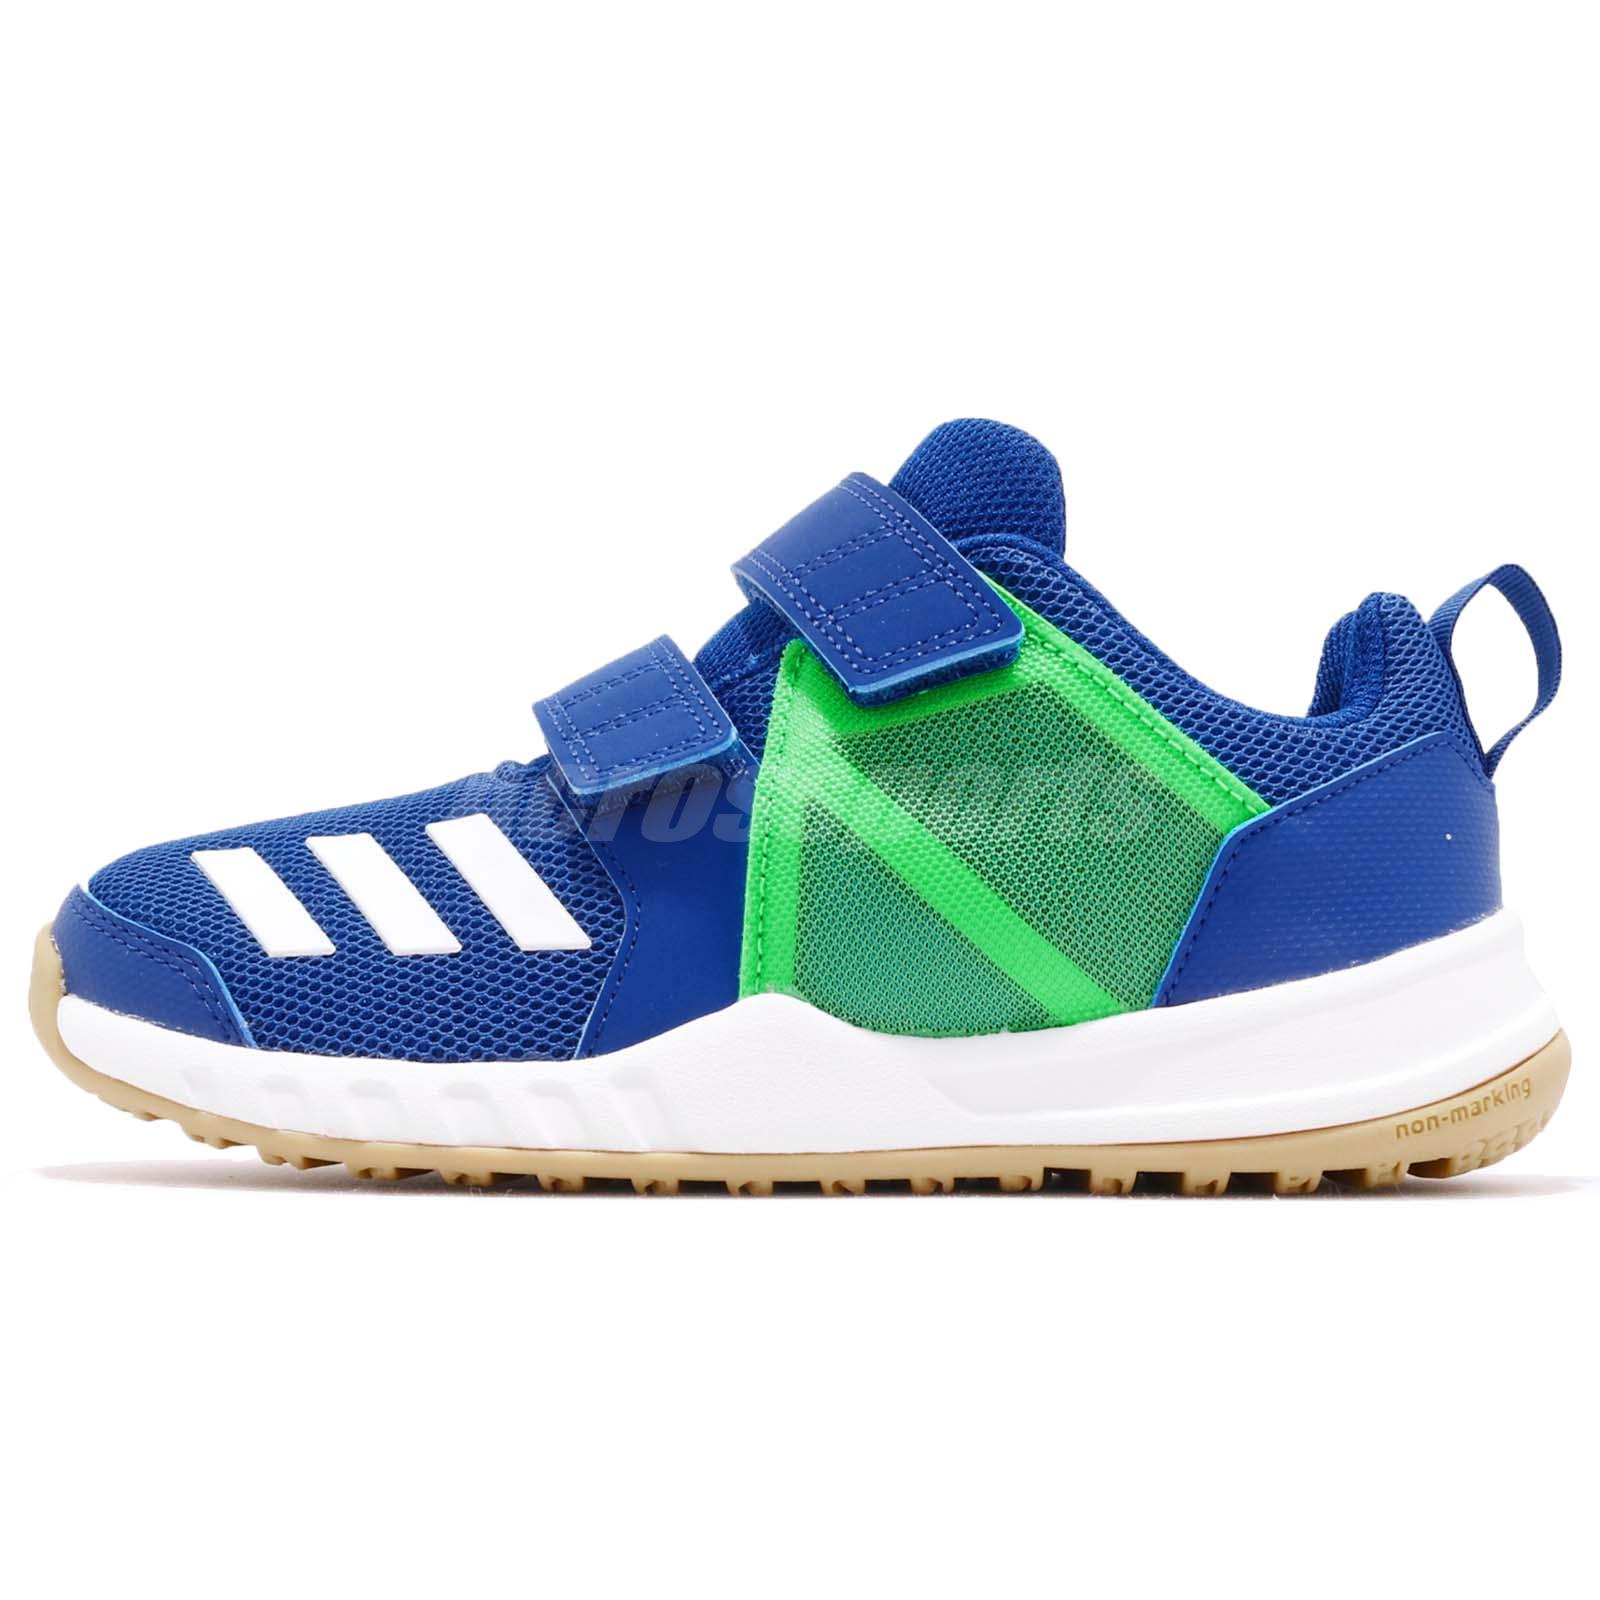 uk availability 6534c 30395 Details about adidas FortaGym CF K Blue Green White Gum Kid Preschool Slip  On Shoes AH2562